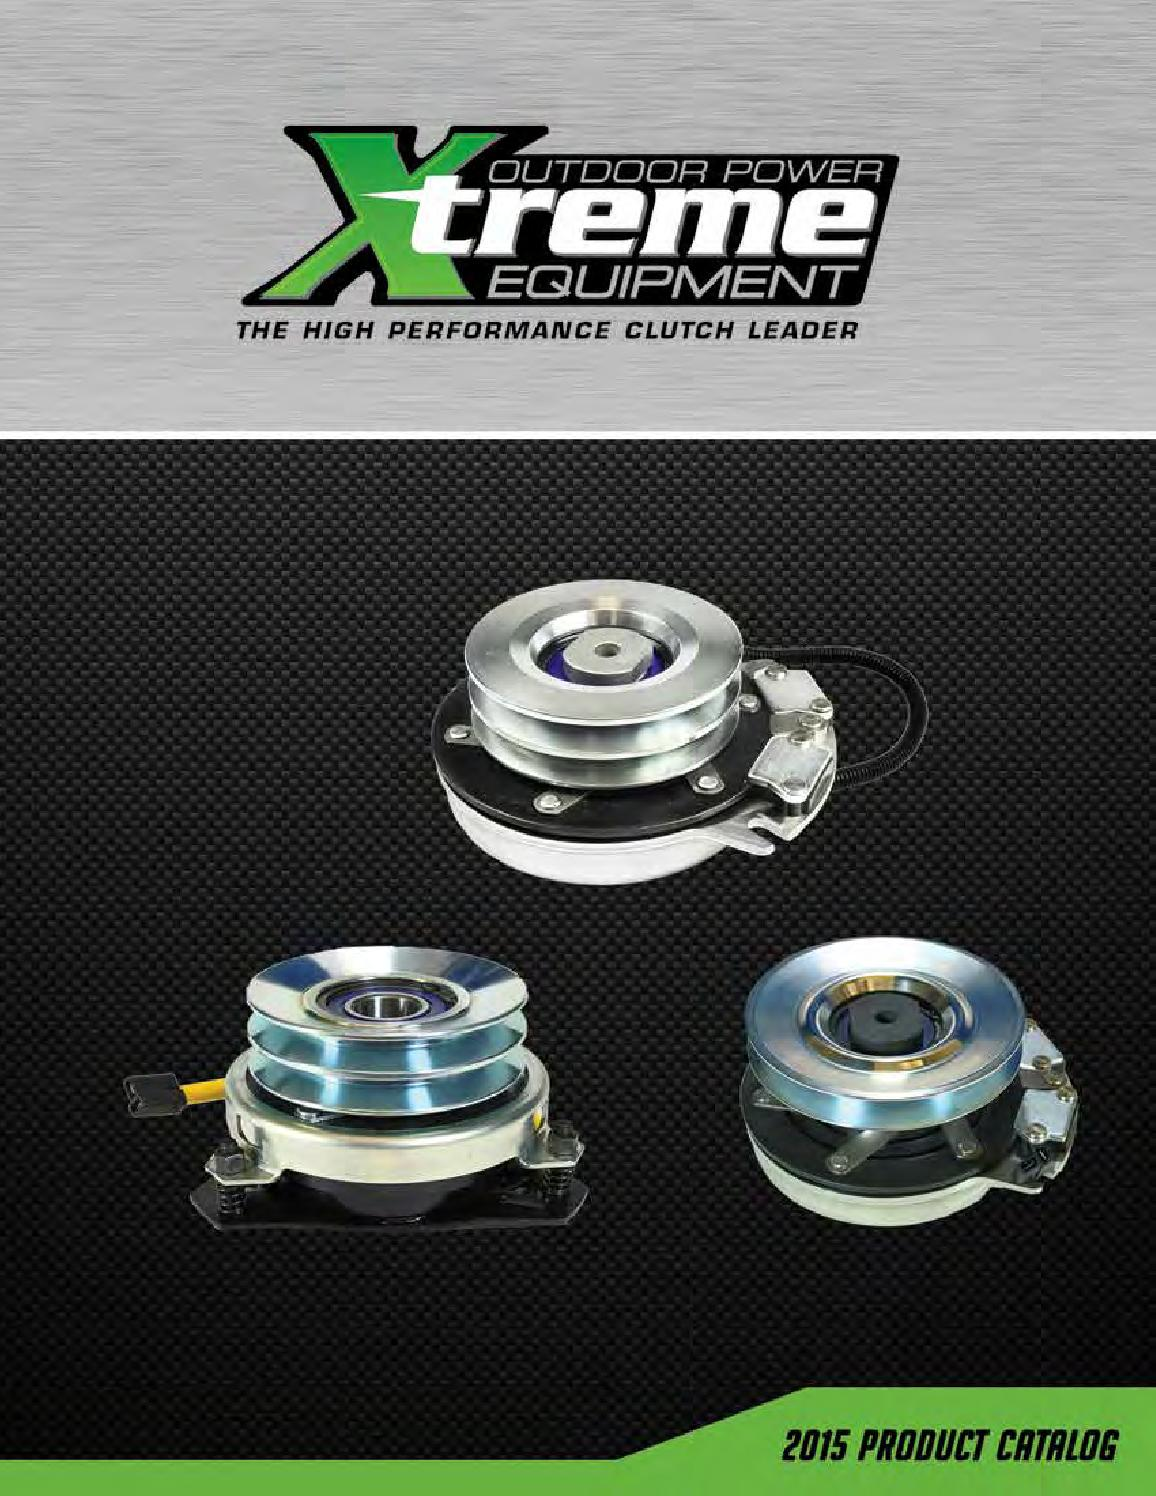 Xtreme 2015 Product Catalog By Arrowhead Electrical Products Issuu Ford Lgt 125 Garden Tractor Wiring Diagram